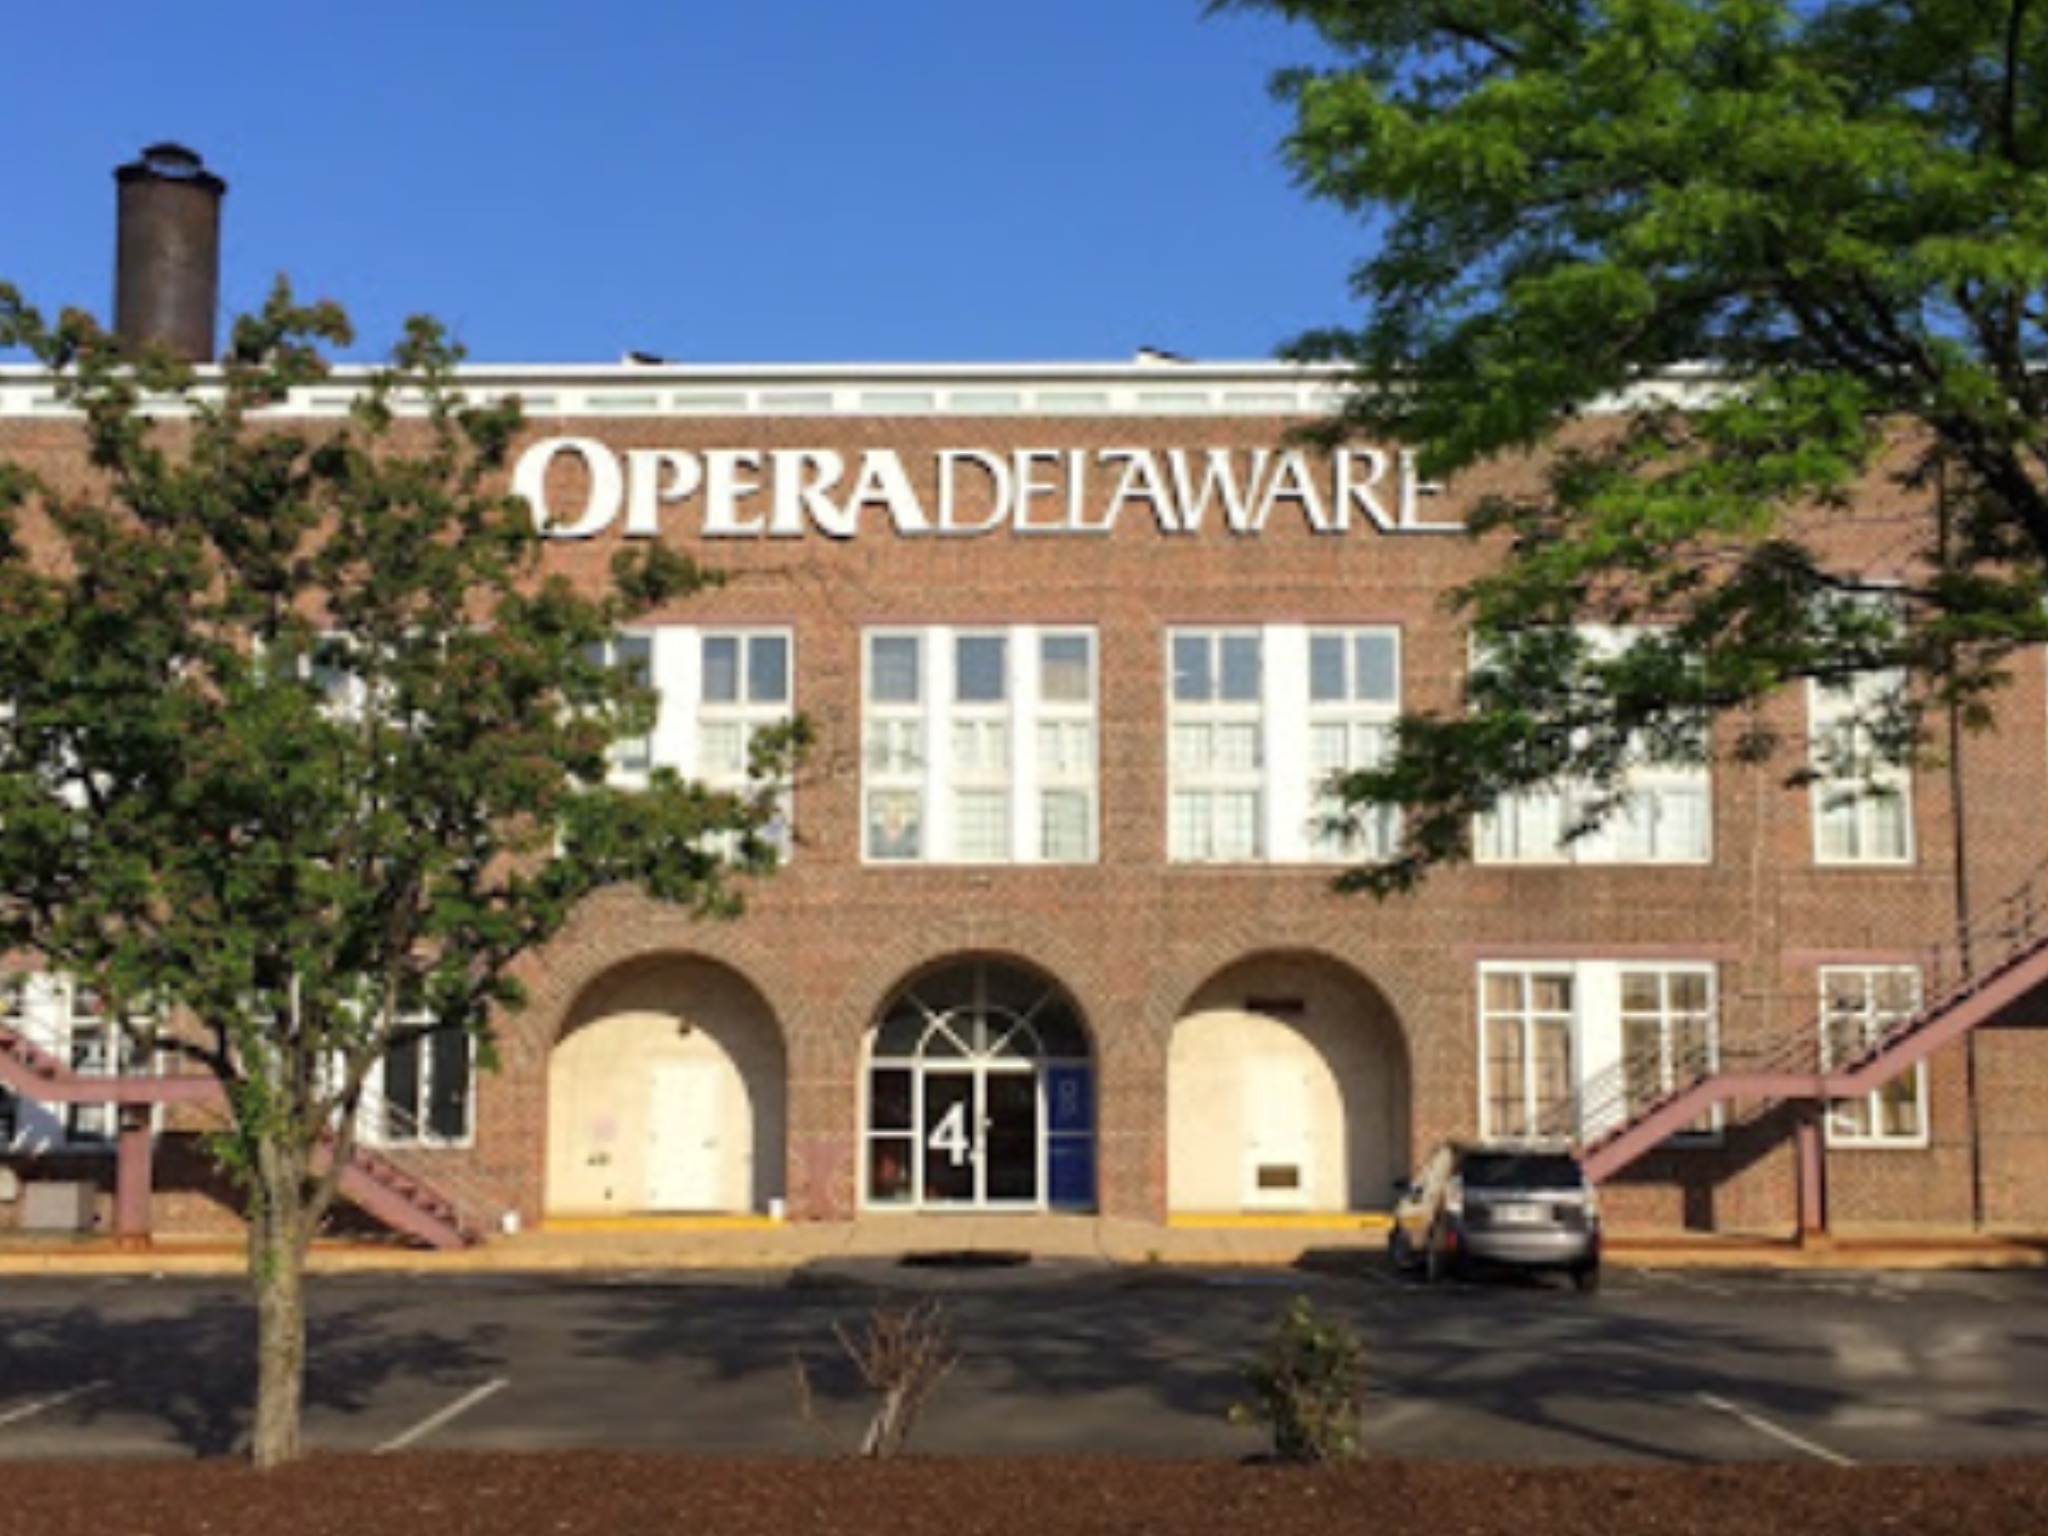 Opera Delaware Offices